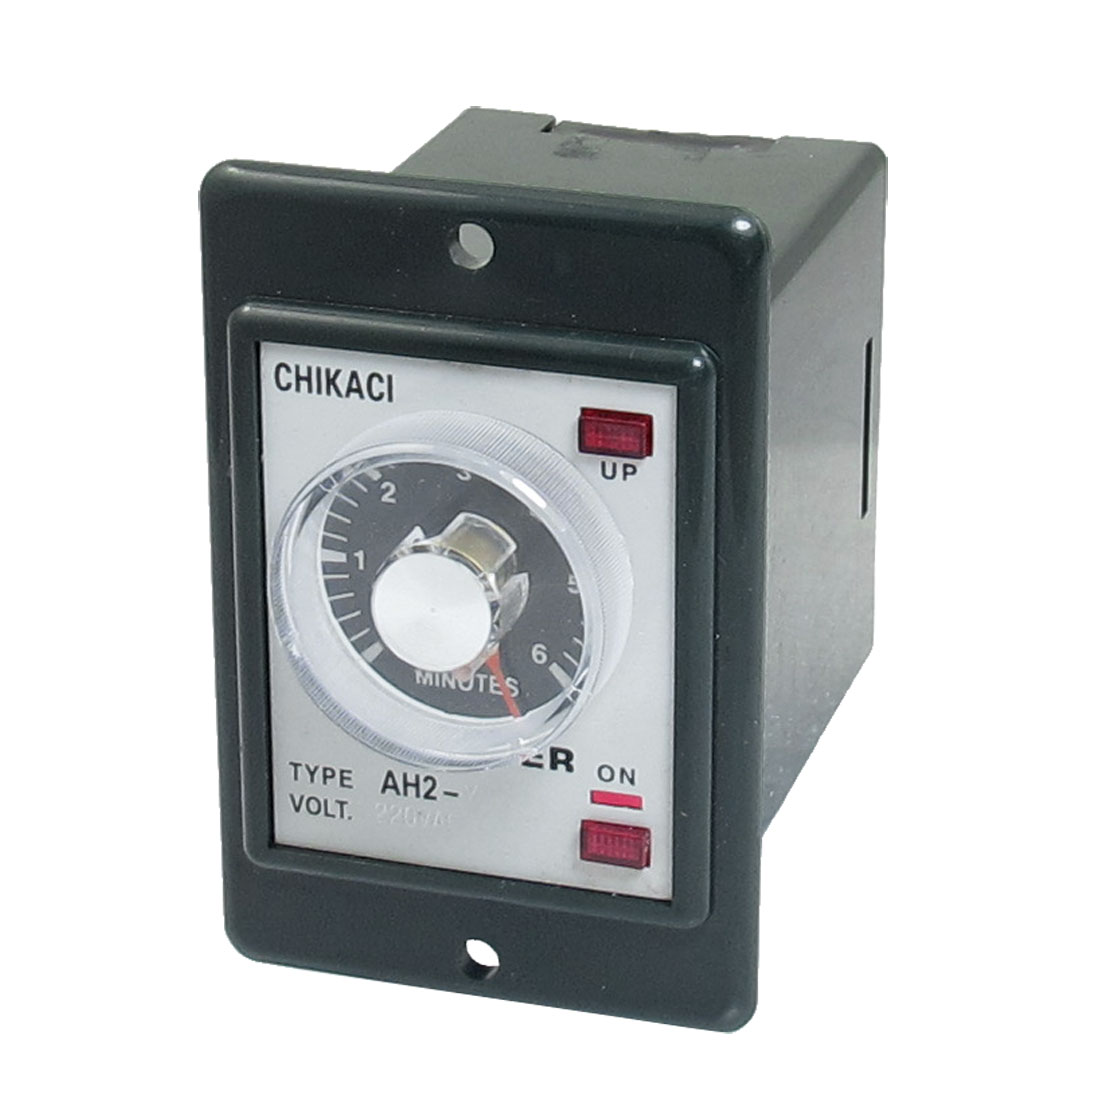 AH2-Y AC 220V 8 Pins DPDT 0-6 Minutes 6Min Power on Delay Timer Time Relay